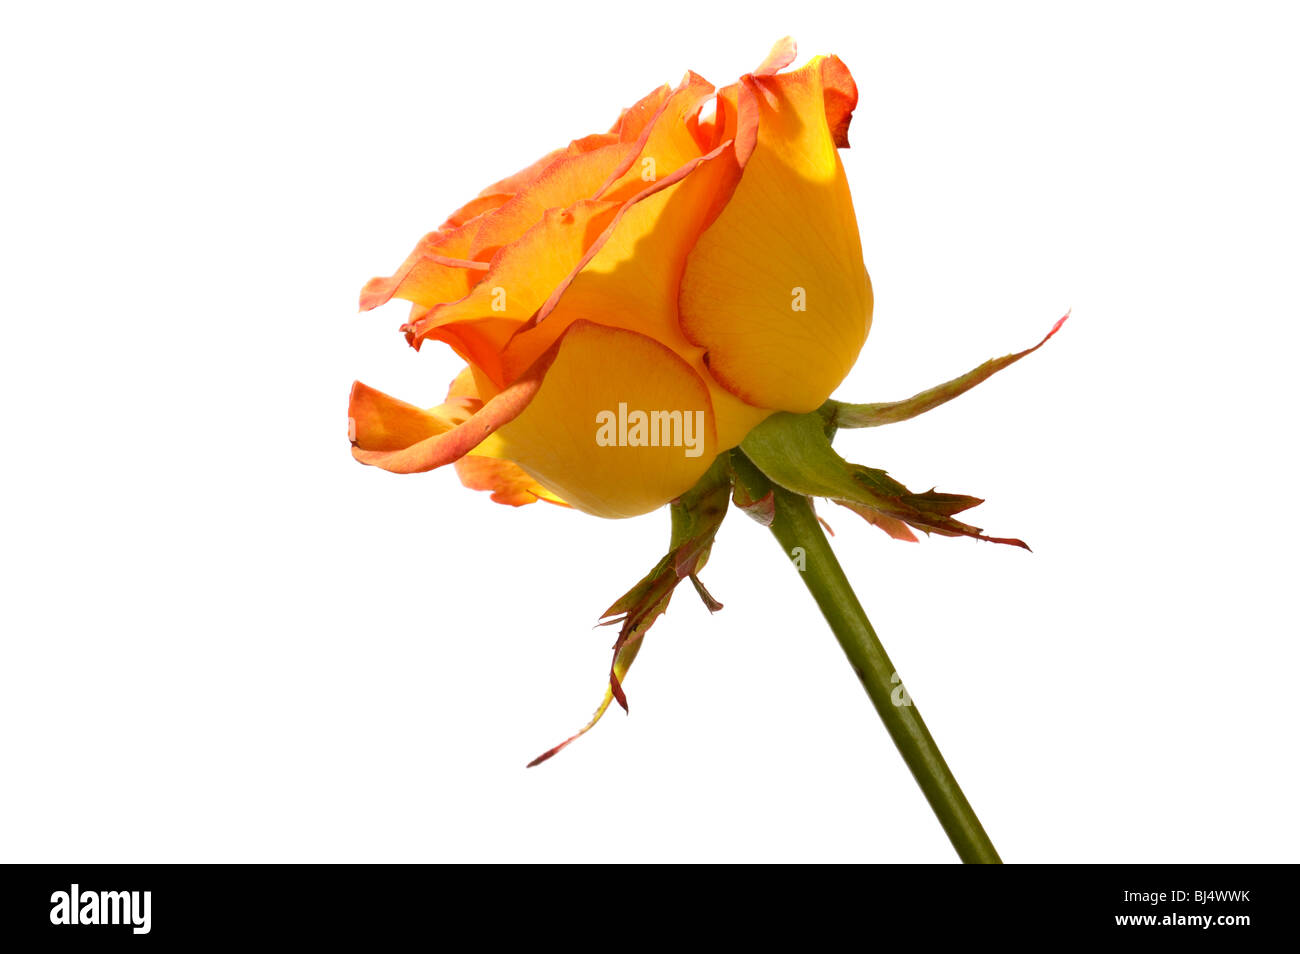 Orange rose side view closeup Isolated silhouette on white backgrounds - Stock Image